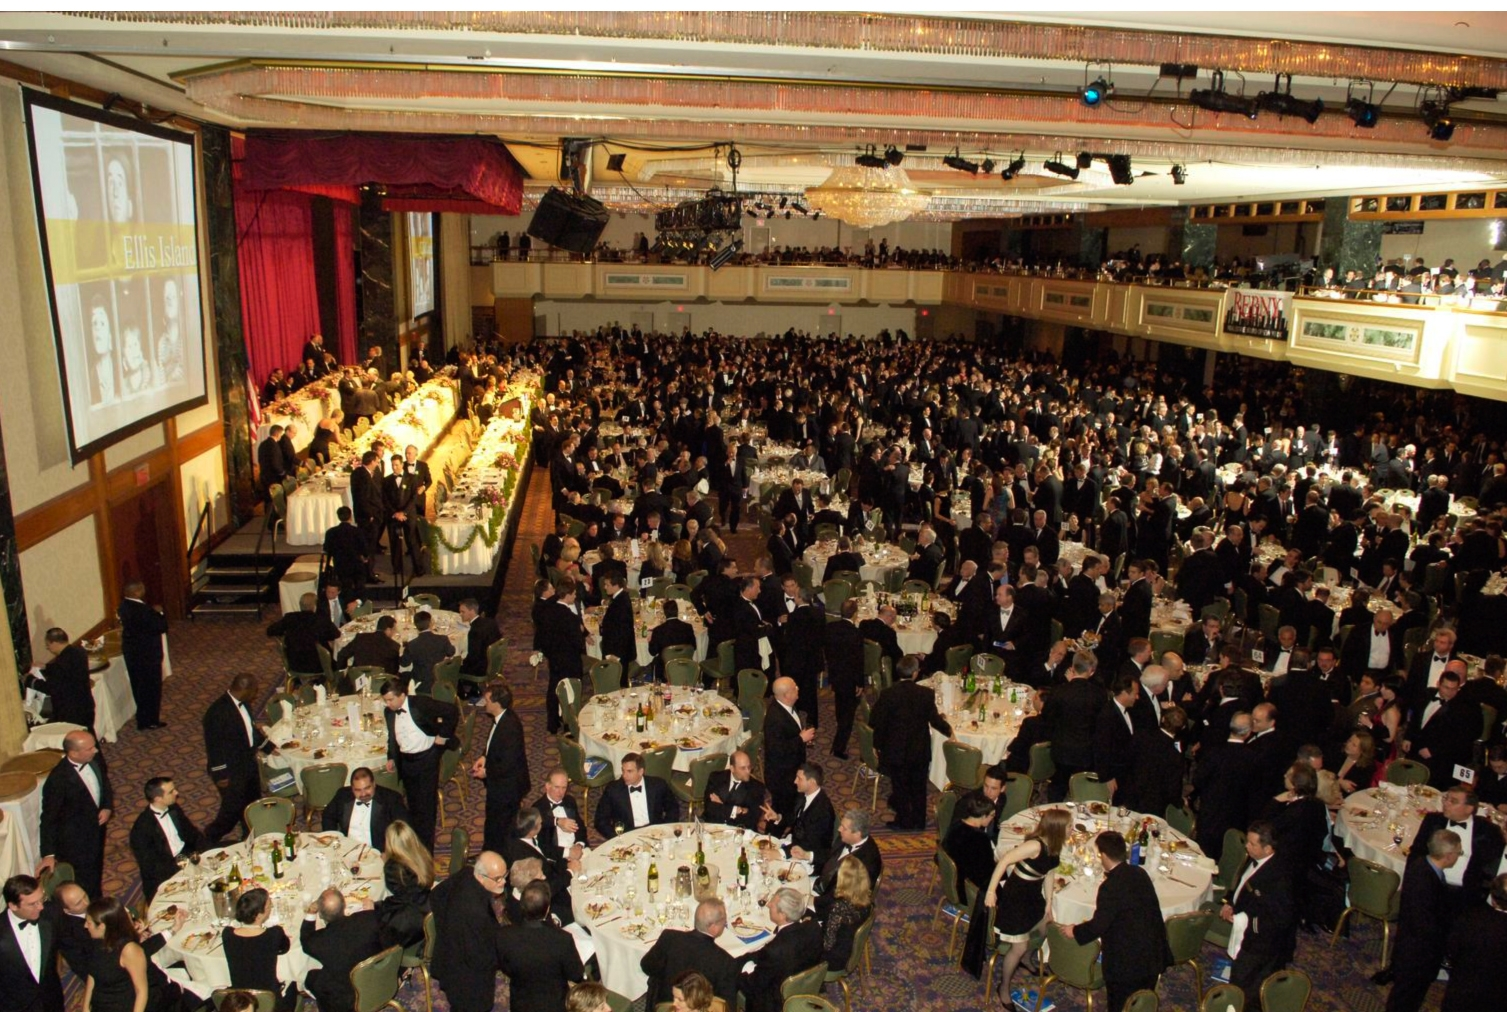 An image from the annual REBNY GALA